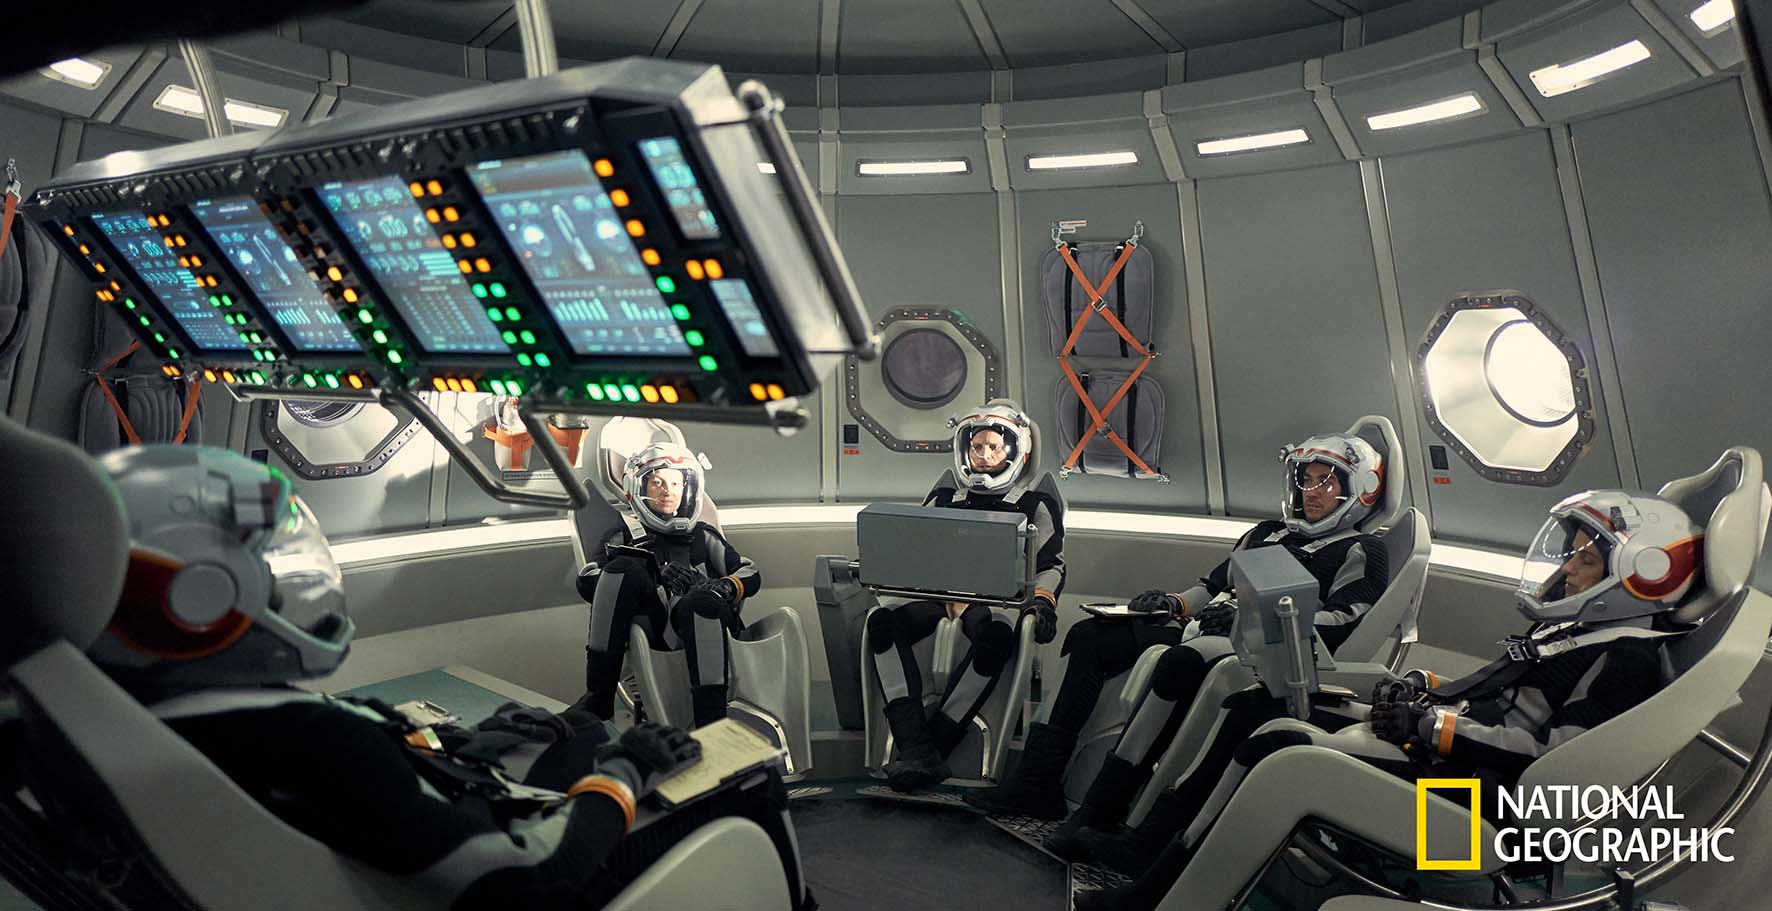 The six-person crew on the Daedalus.    The global event series MARS premieres on the National Geographic Channel in November 2016.  (photo credit: National Geographic Channels/Robert Viglasky)